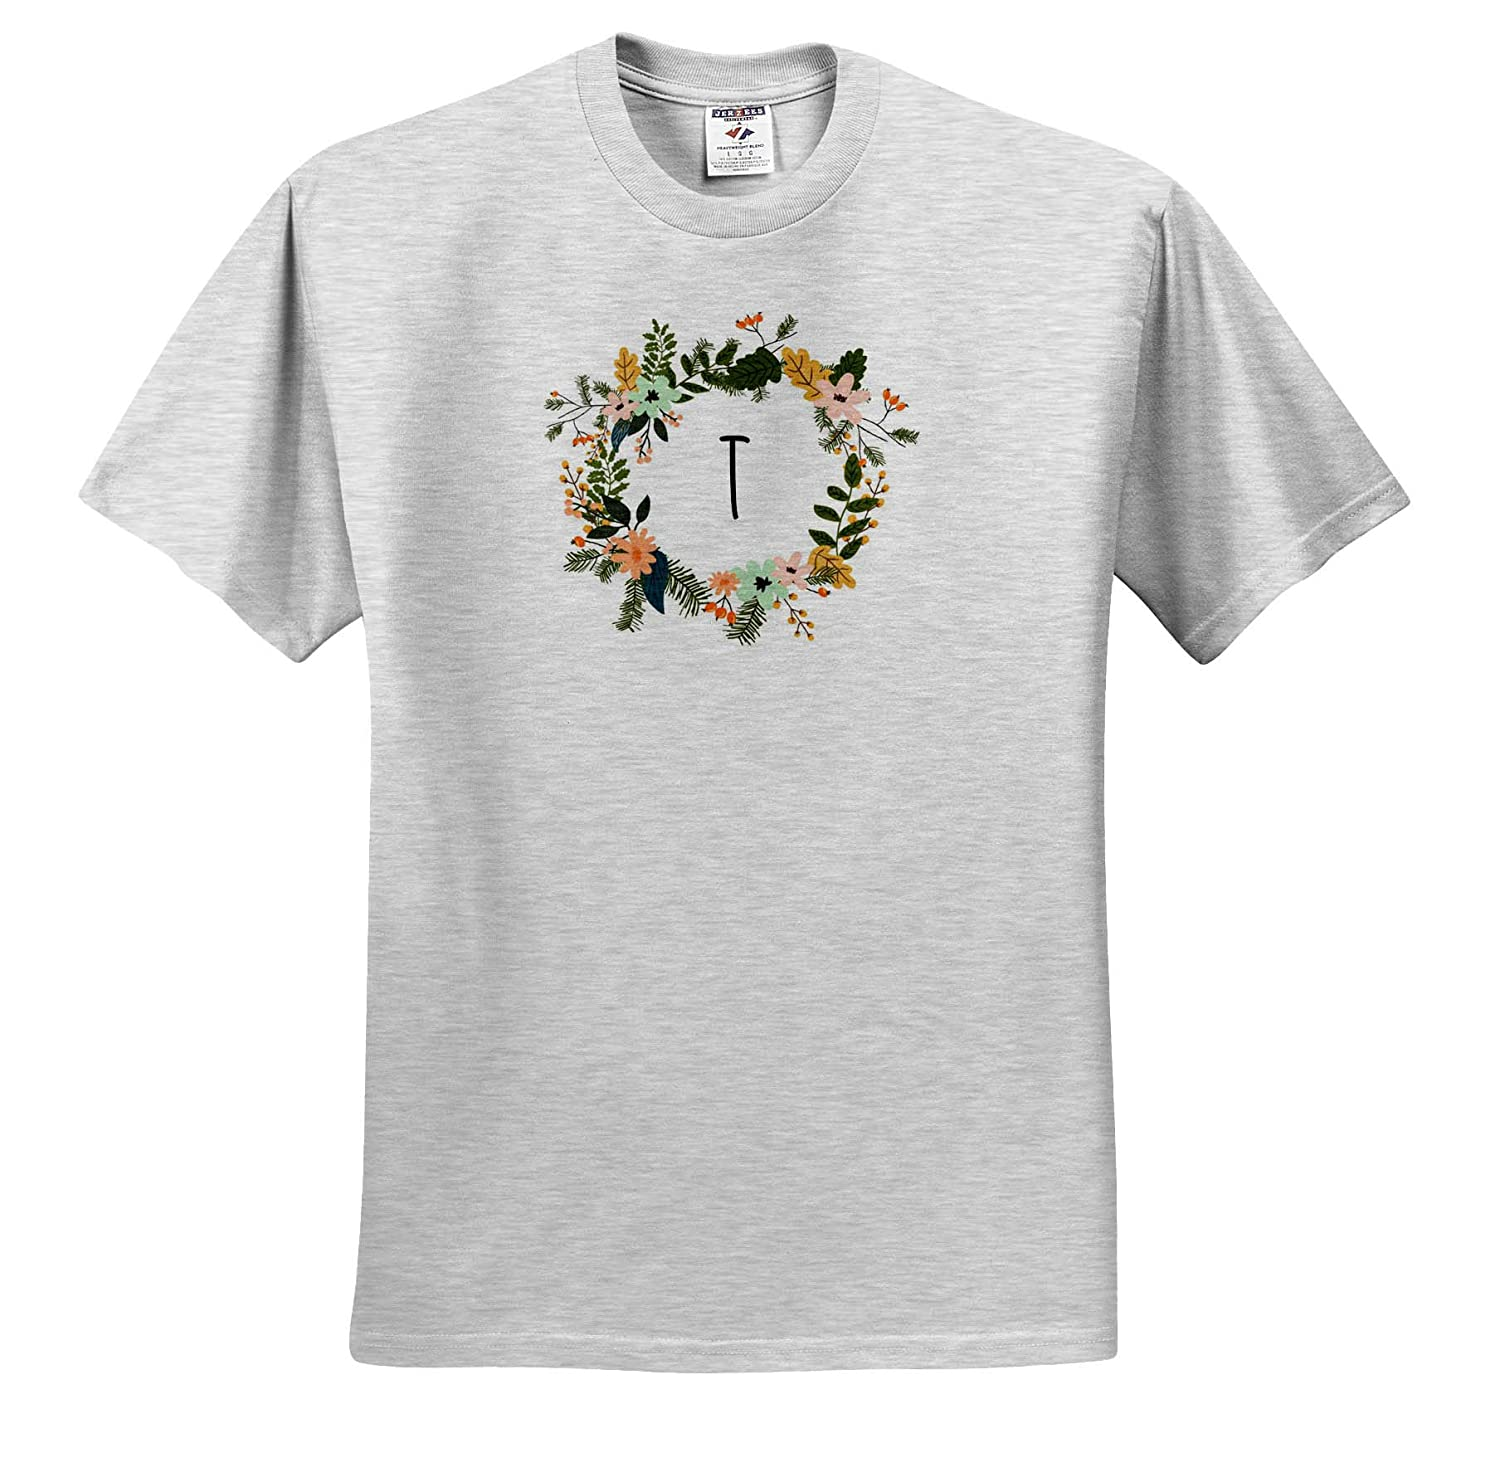 Image of T Floral Monogram 3dRose Gabriella B T-Shirts Quote